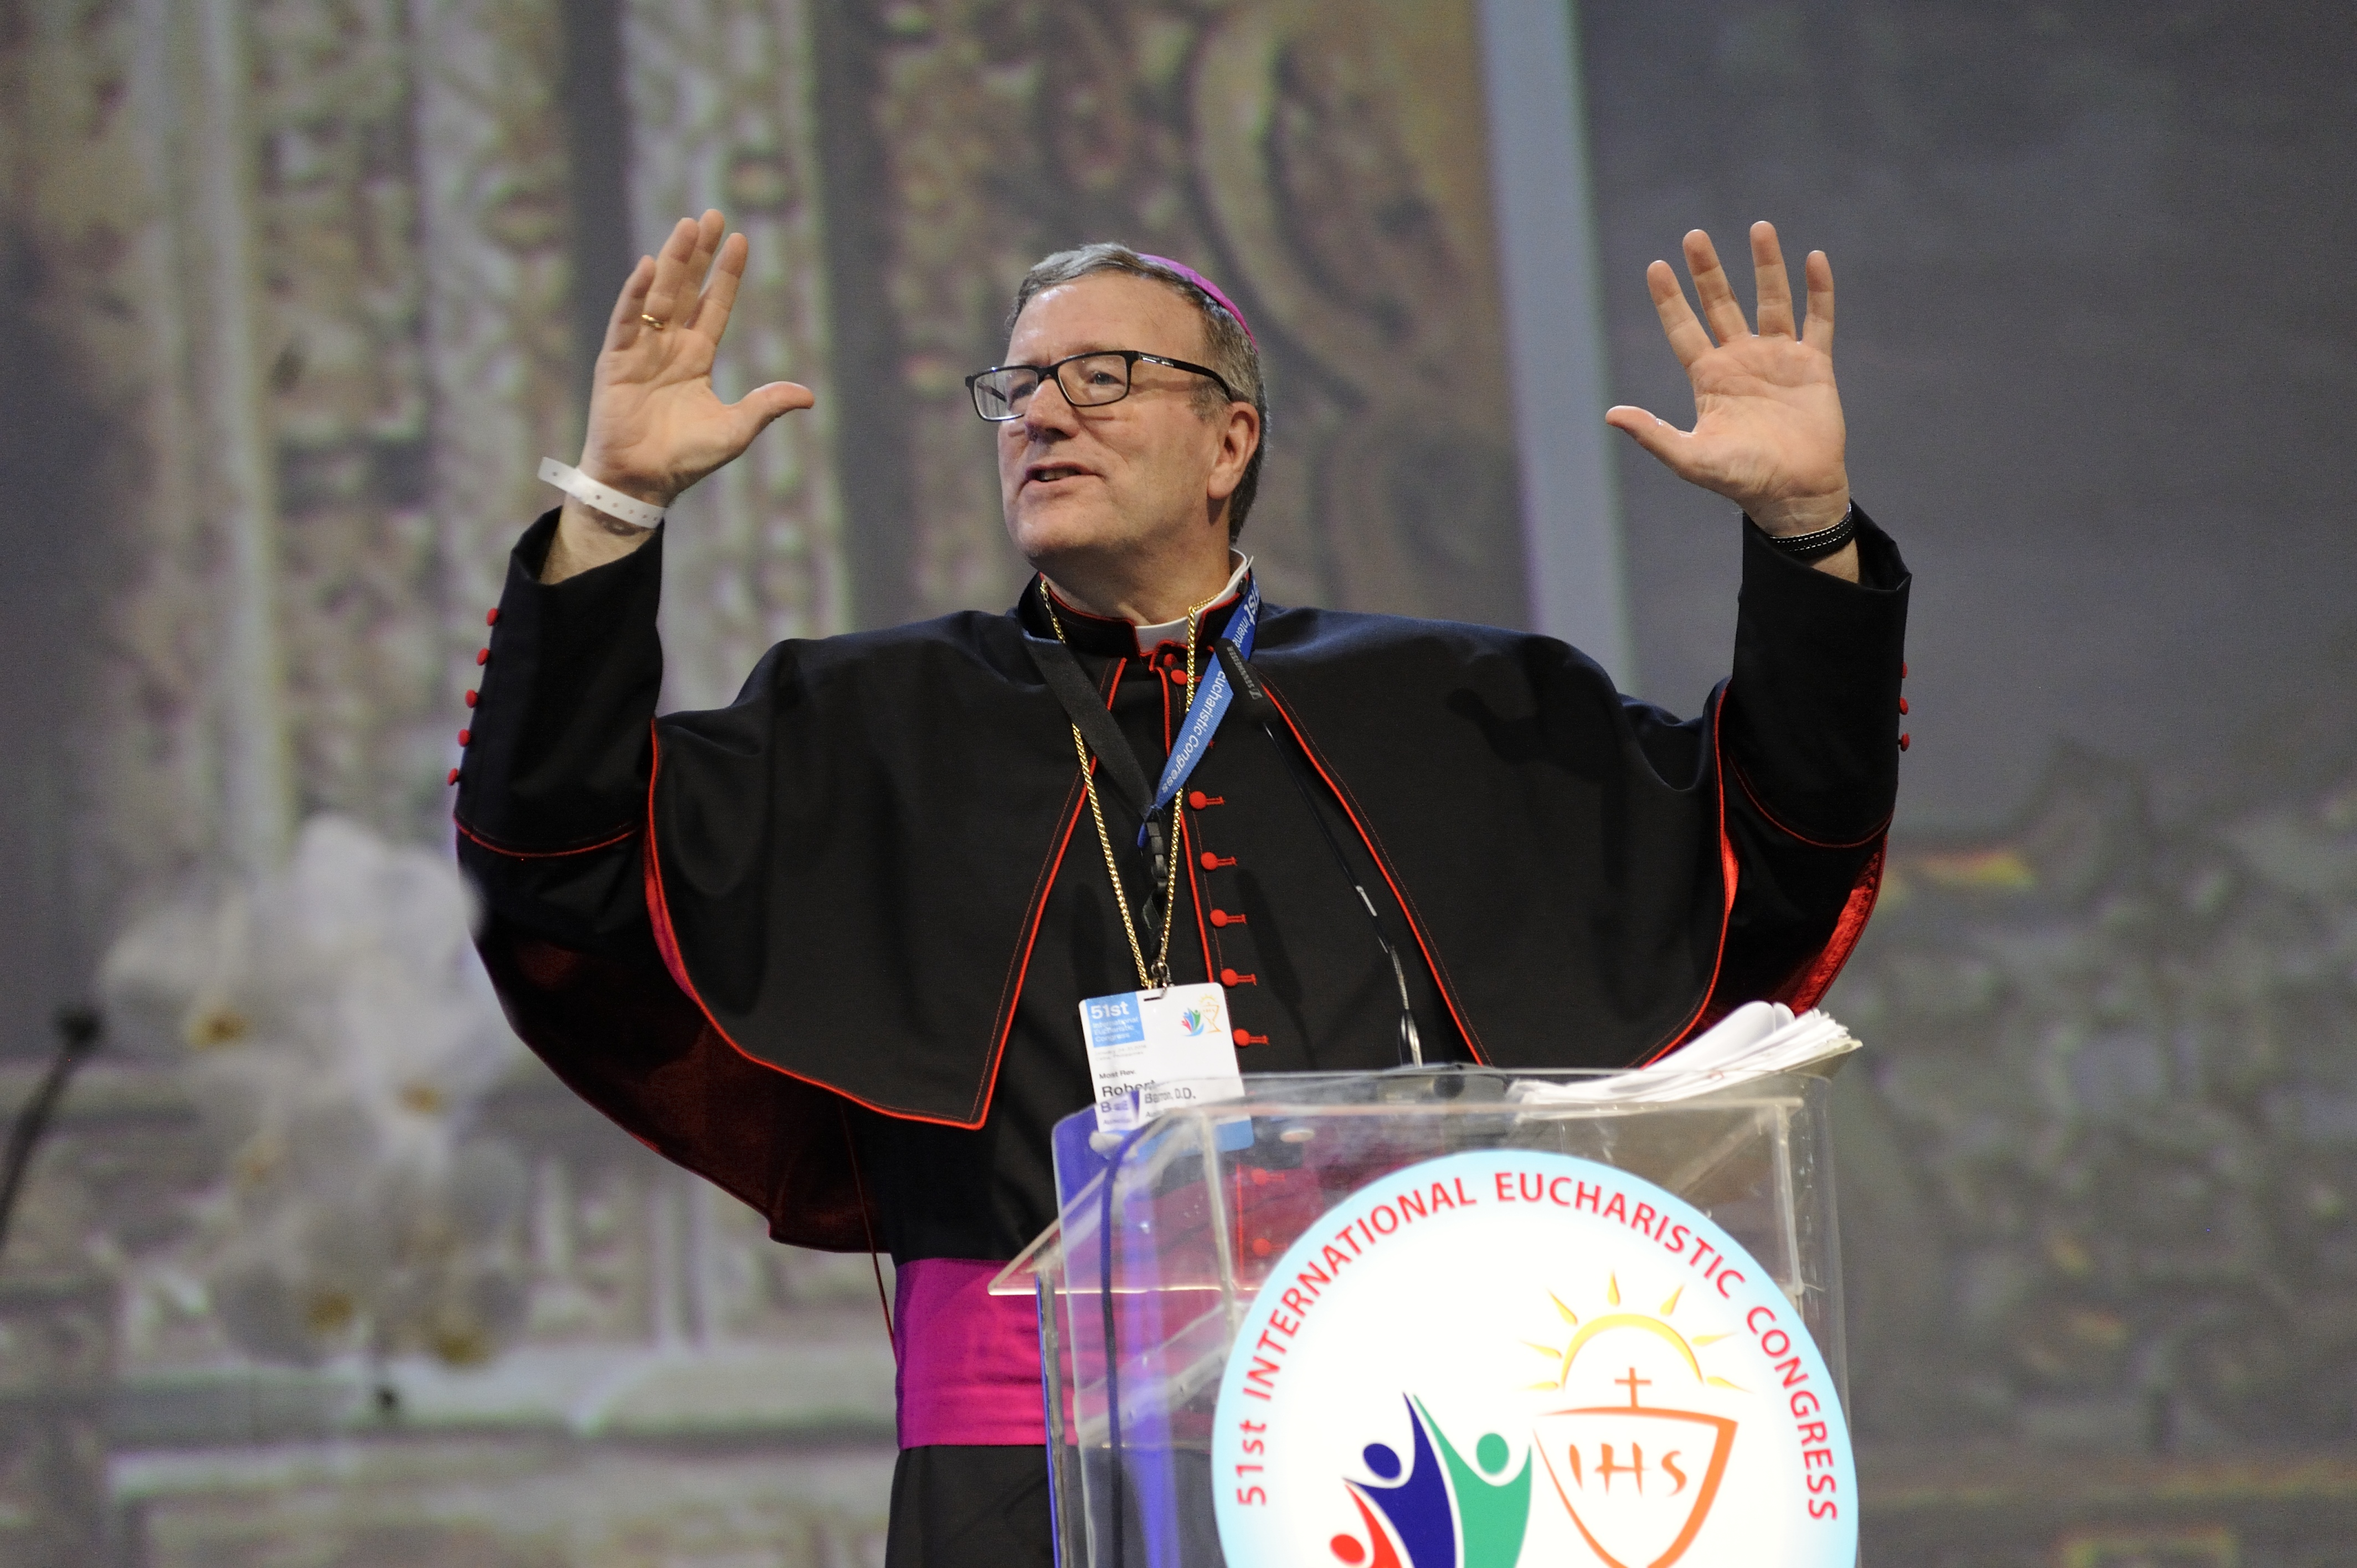 Los Angeles Auxiliary Bishop Robert E. Barron speaks at a session of the 51st International Eucharistic Congress in Cebu, Philippines, Jan. 26. (CNS photo/Katarzyna Artymiak)